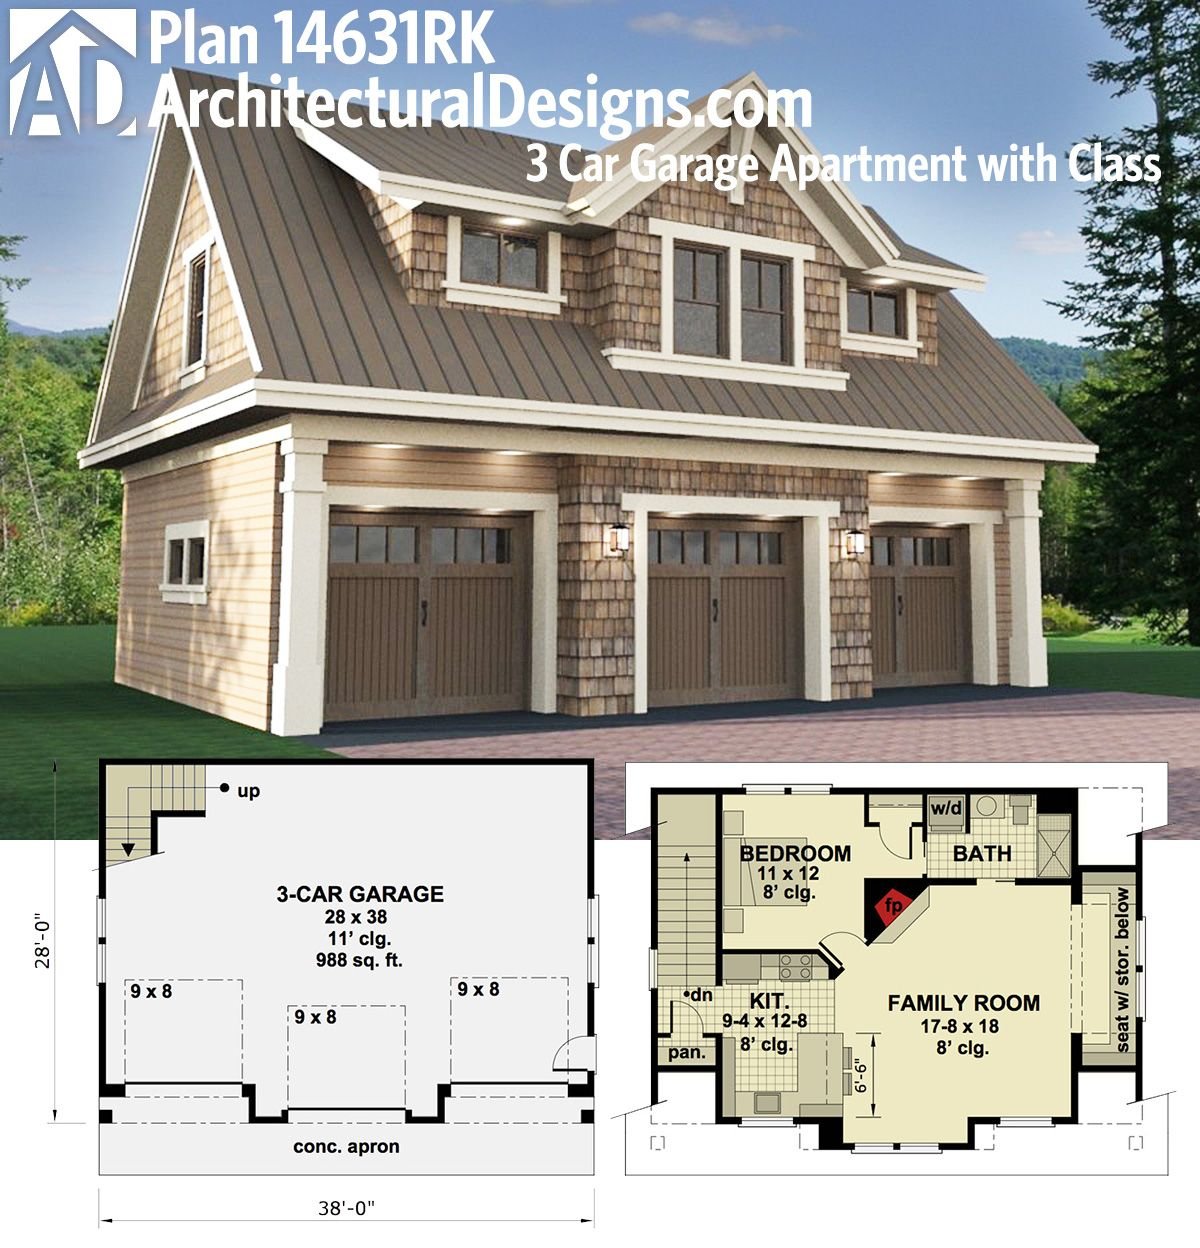 Architectural designs carriage house plan 14631rk gives for House with garage apartment